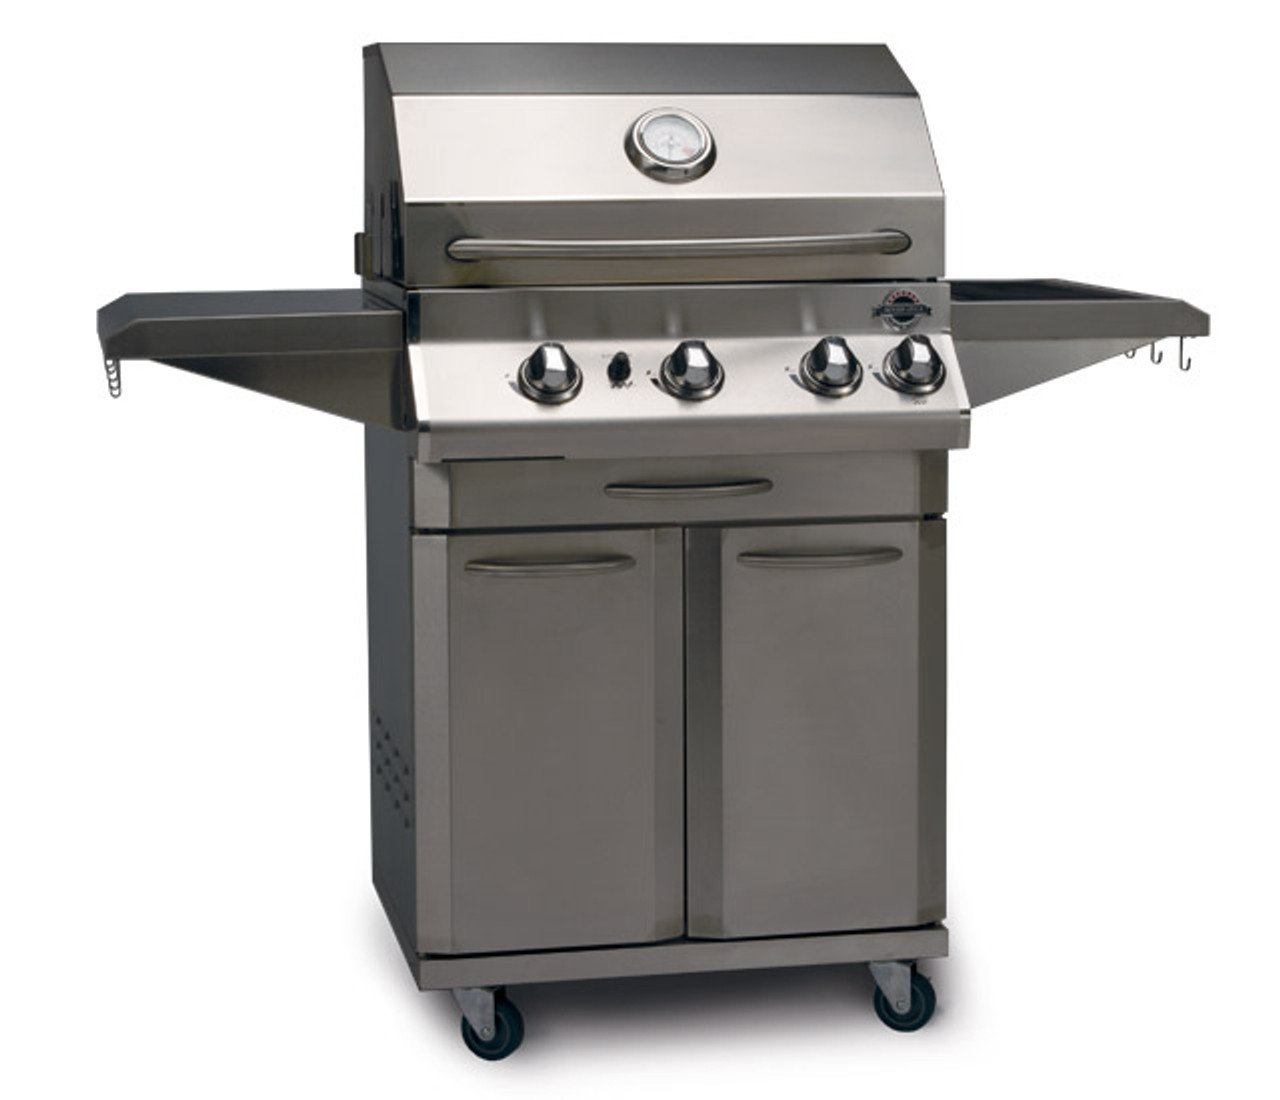 Jackson Grills Lux 550 Cart Model With Rotisserie Kit